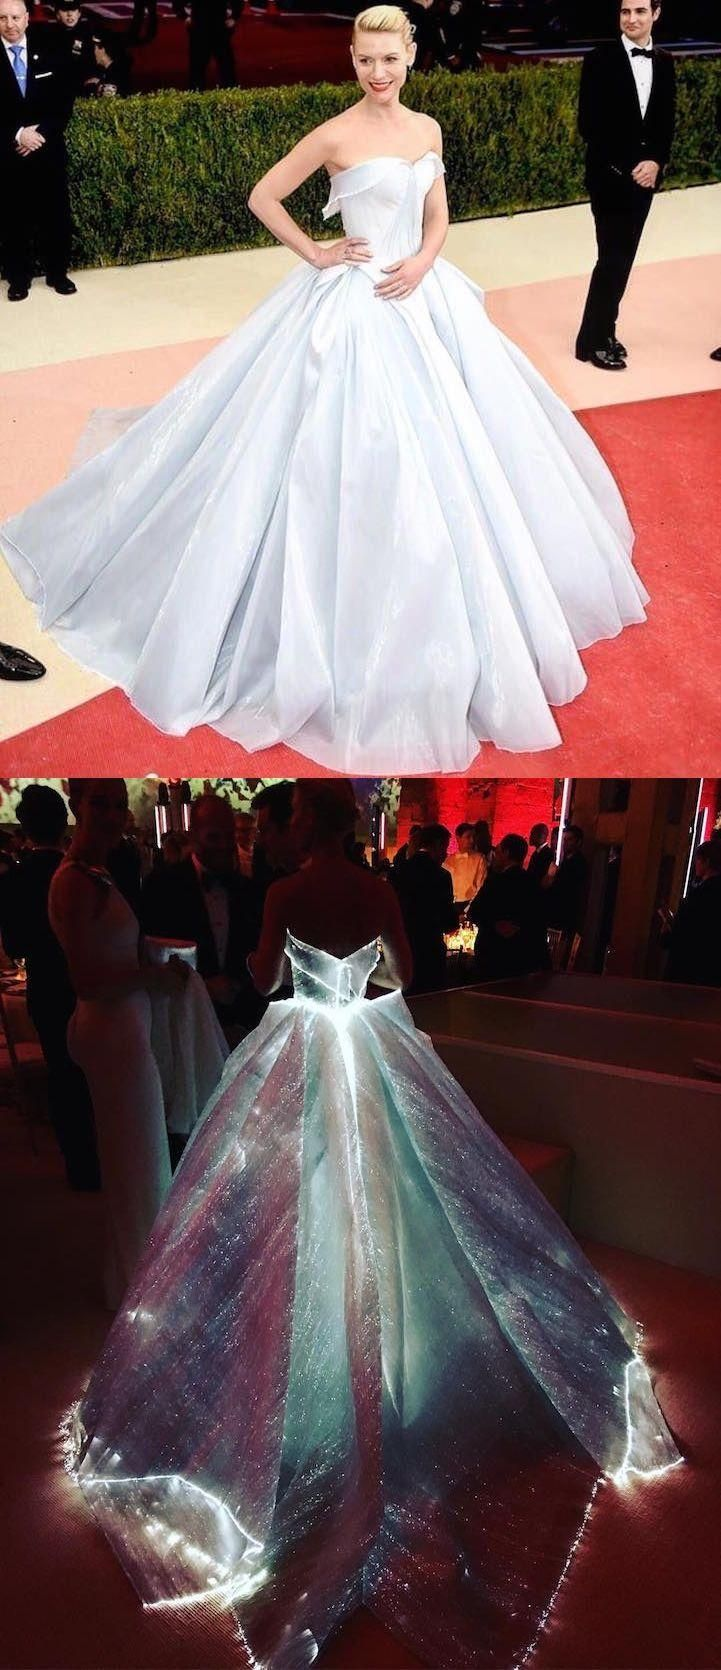 Claire danes becomes reallife cinderella at the met gala in glowing